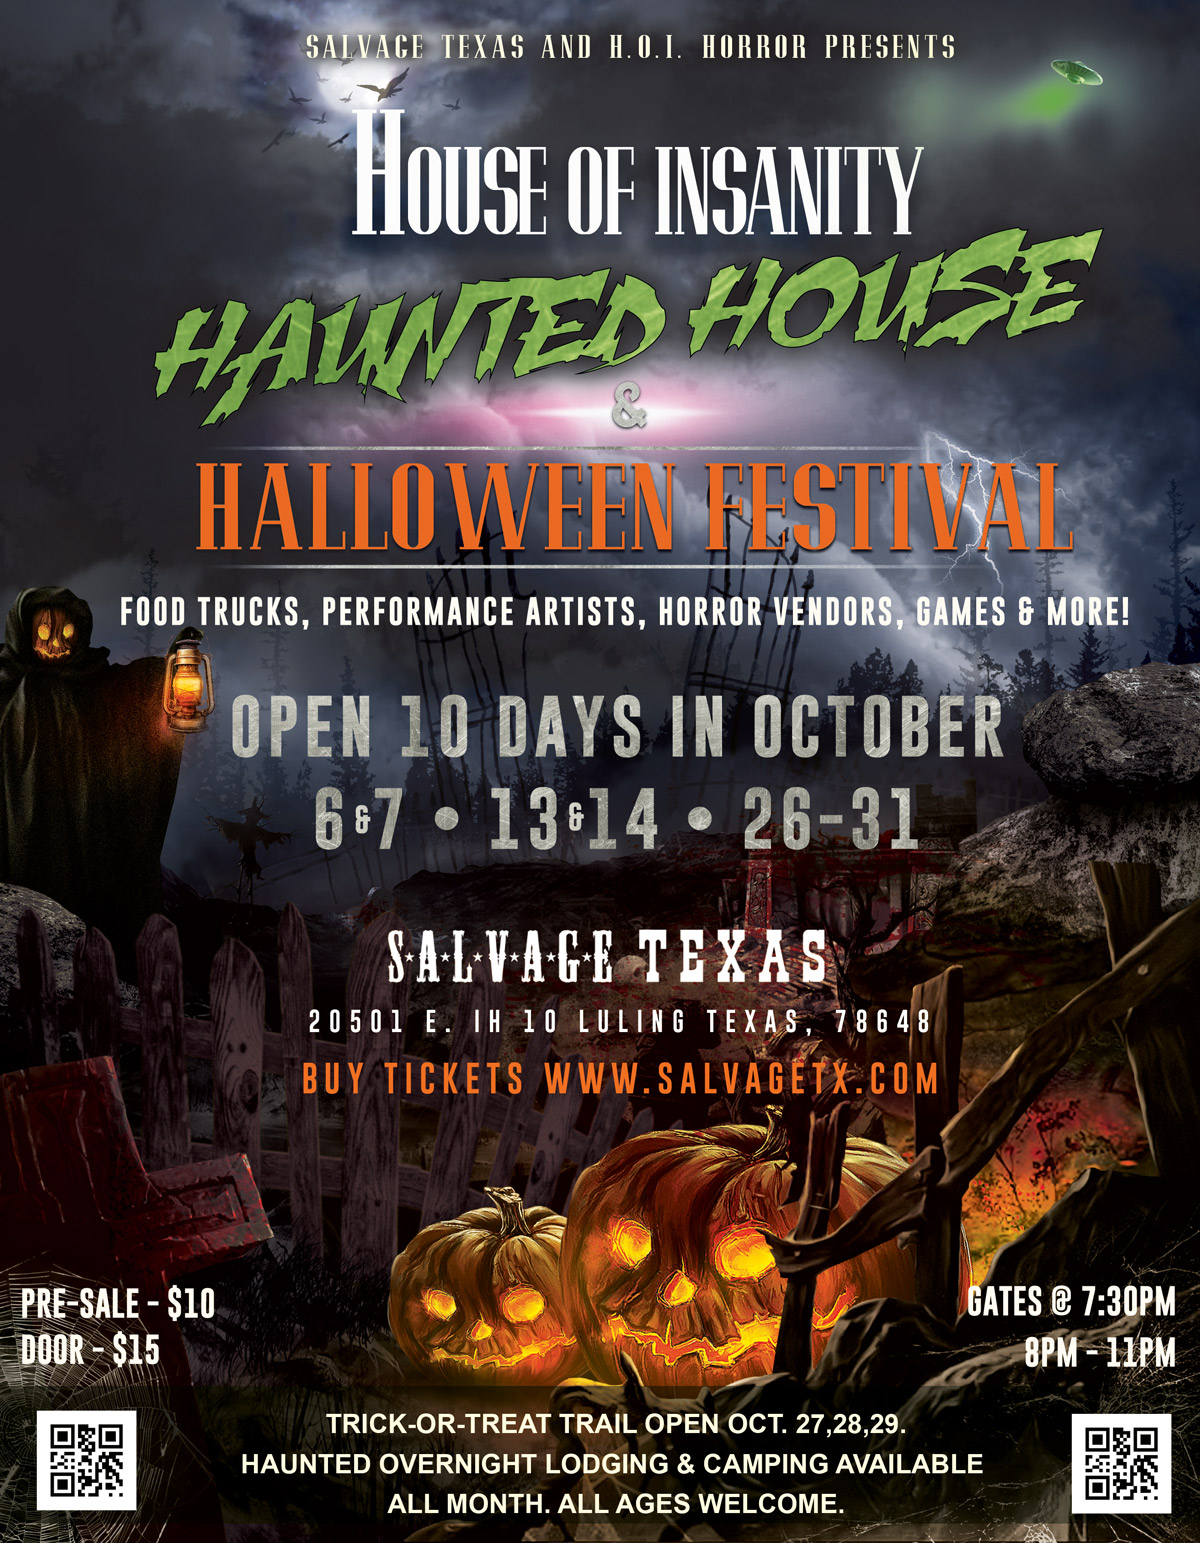 House Of Insanity Haunted House & Halloween Festival 2017